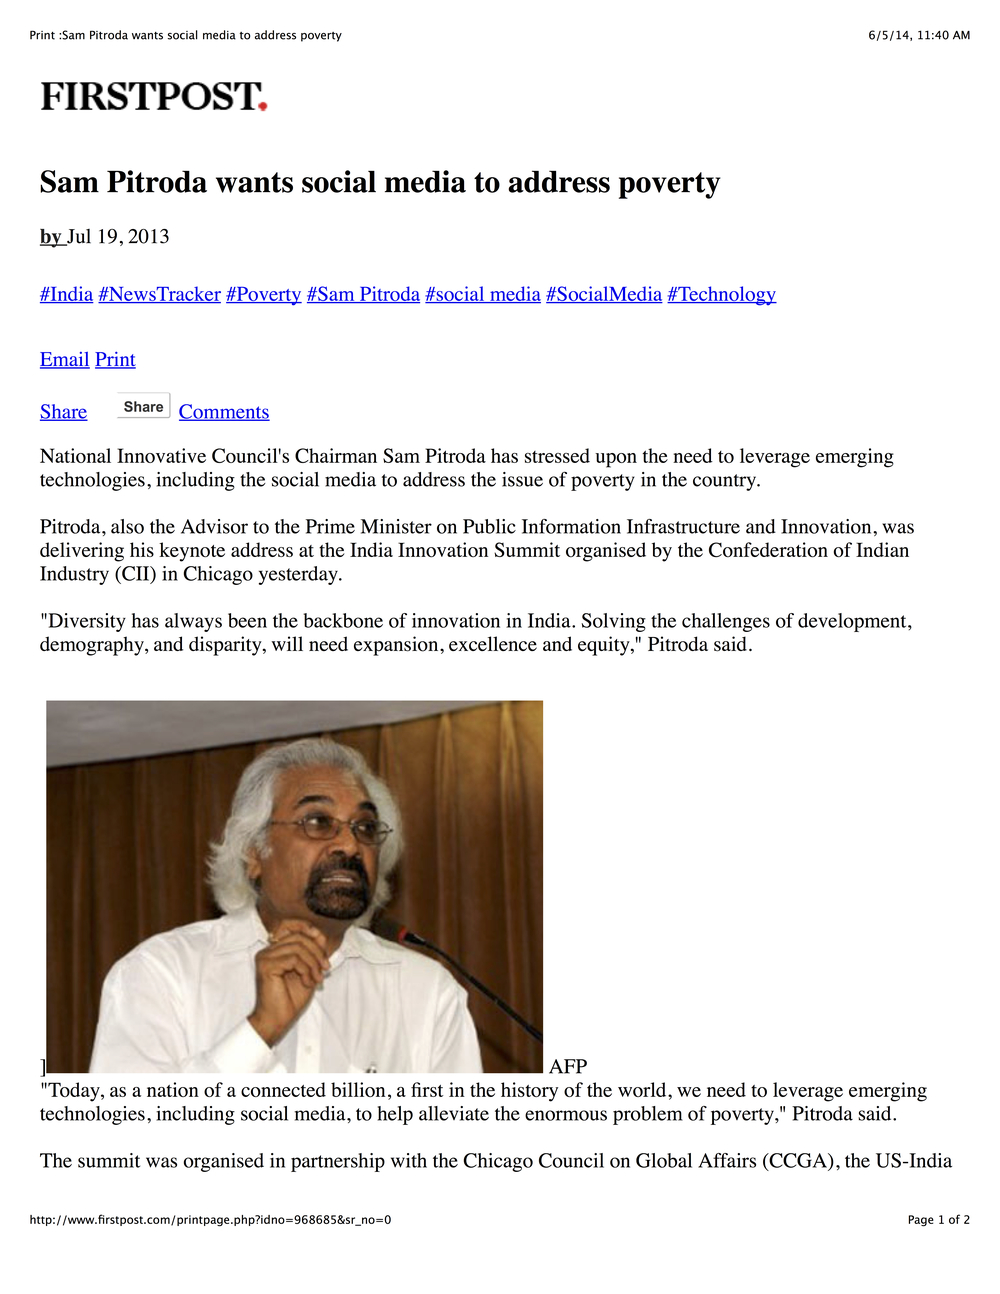 """Sam Pitroda Wants Social Media to Address Poverty,"" FirstPost, 2013"